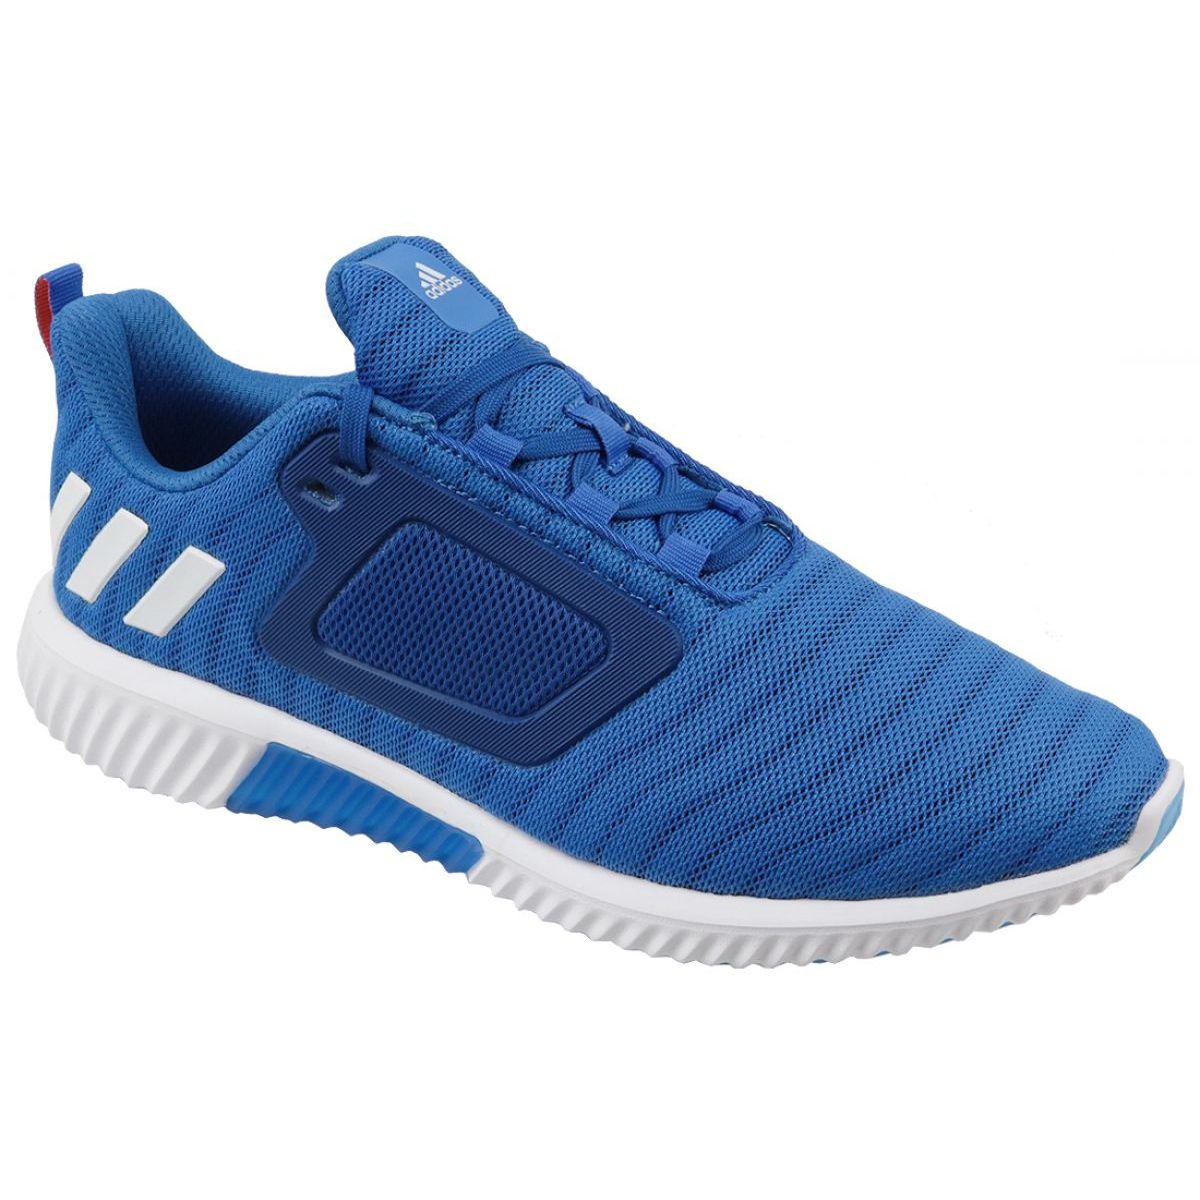 Adidas Climacool Cm M BY2347 shoes blue